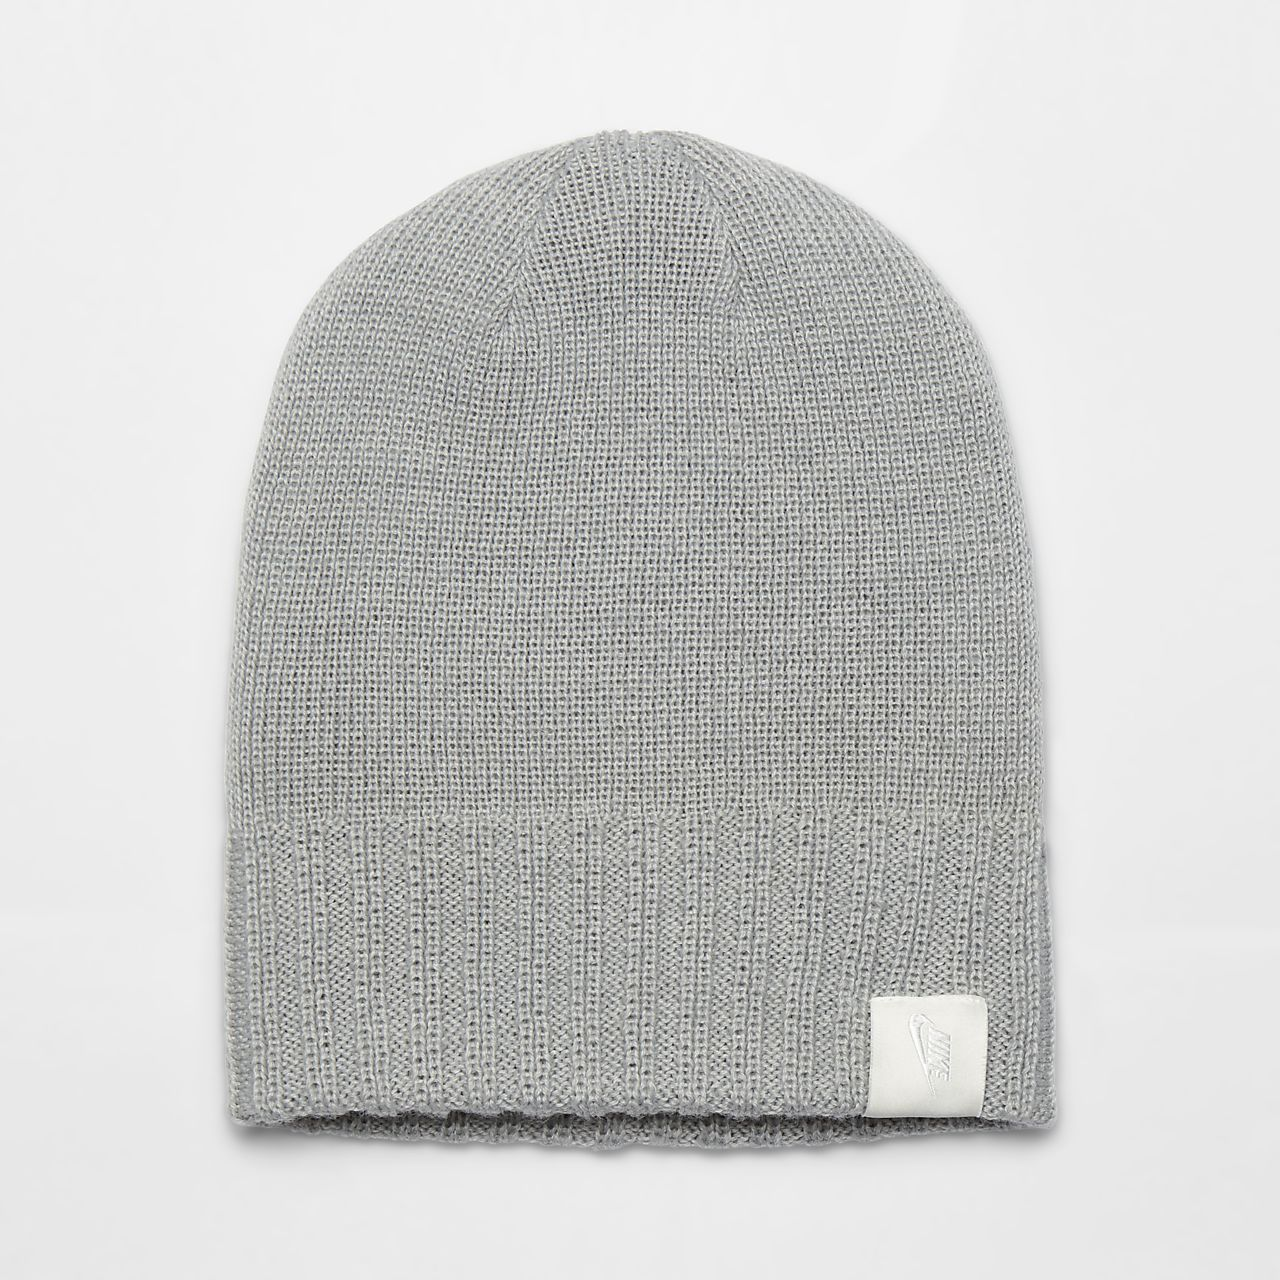 Nikelab Collection Beanie Unisex Knit Hat Nike Com In